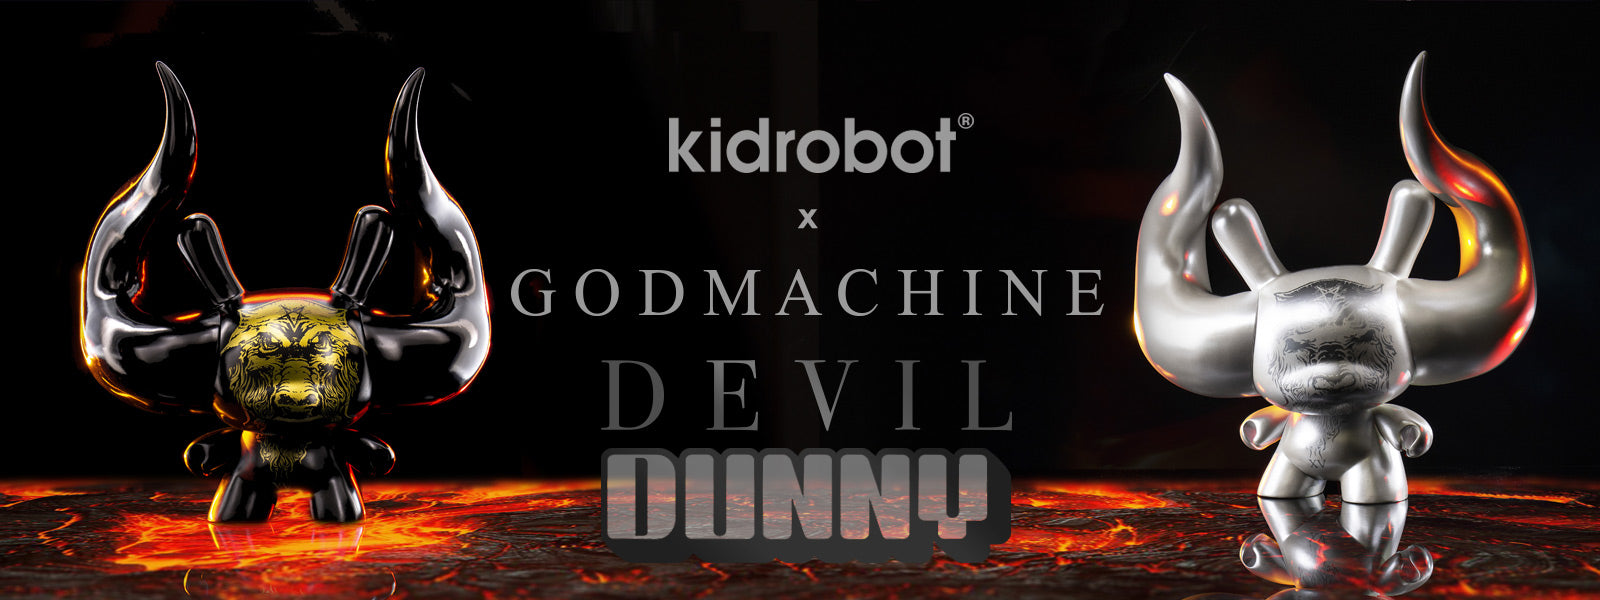 Arcane Divination The Devil Tarot Dunny Art Figures by Godmachine - GODMACHINE Art Toys by Kidrobot